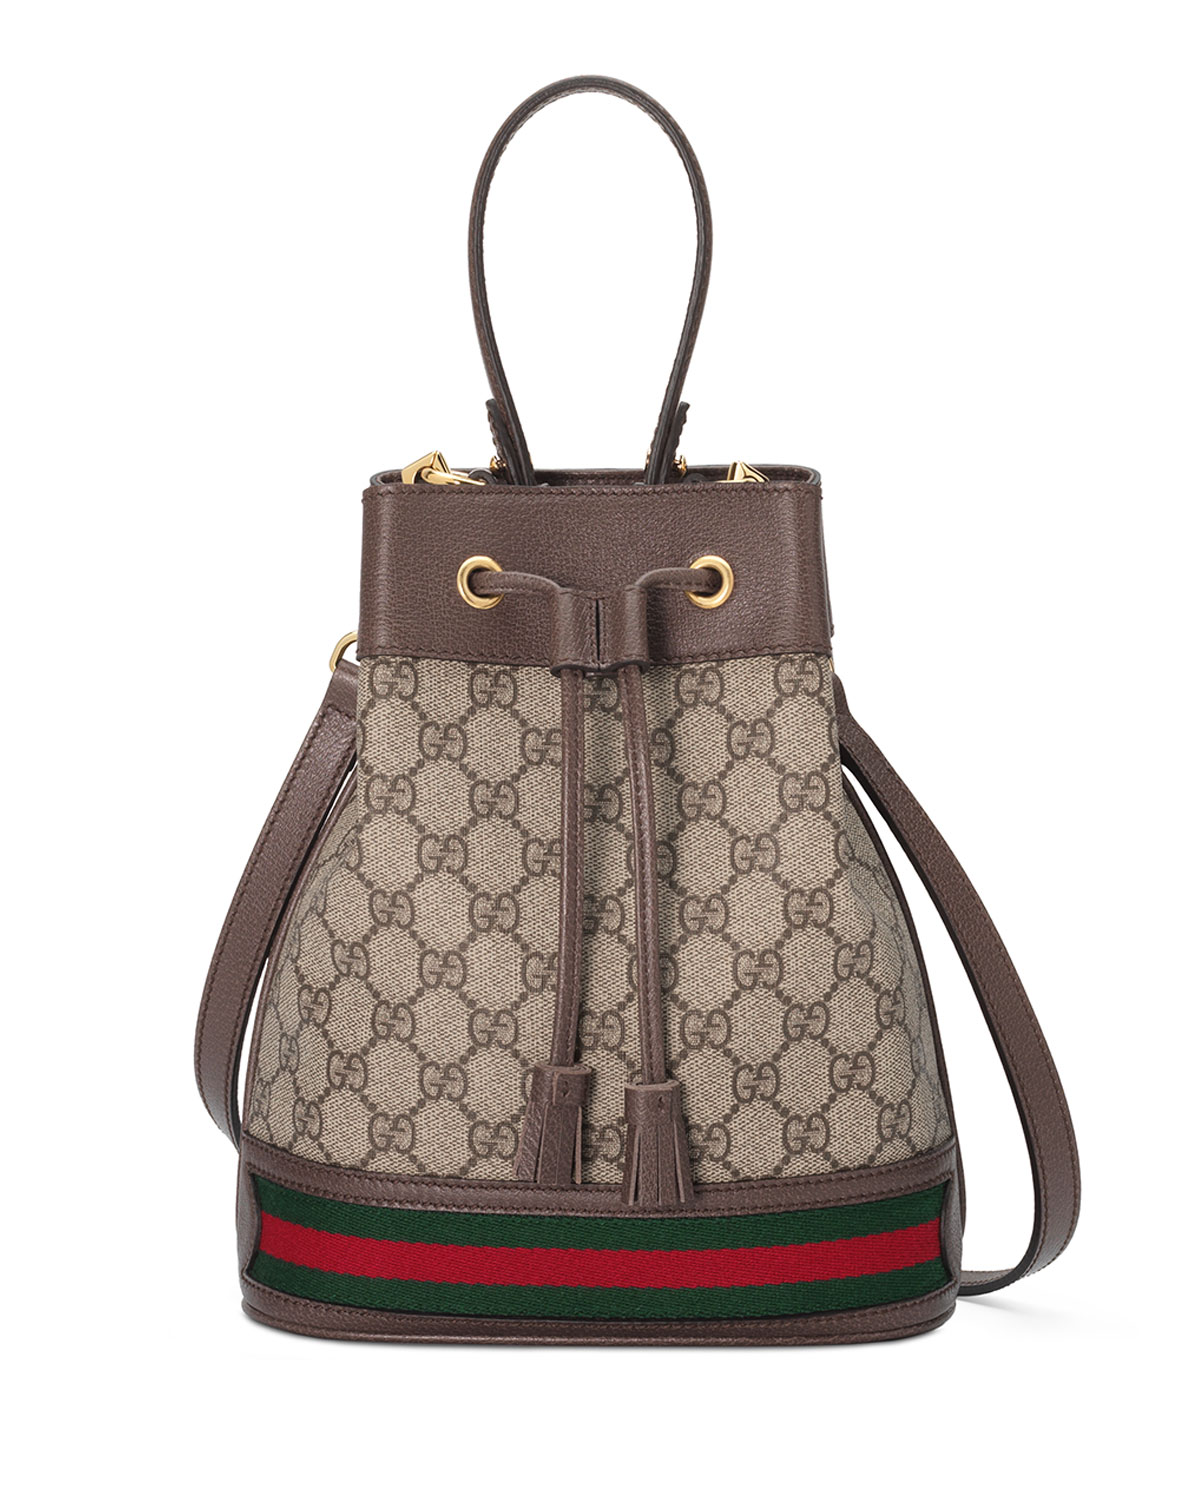 194288794d9423 Gucci Ophidia Small GG Supreme Bucket Bag | Neiman Marcus